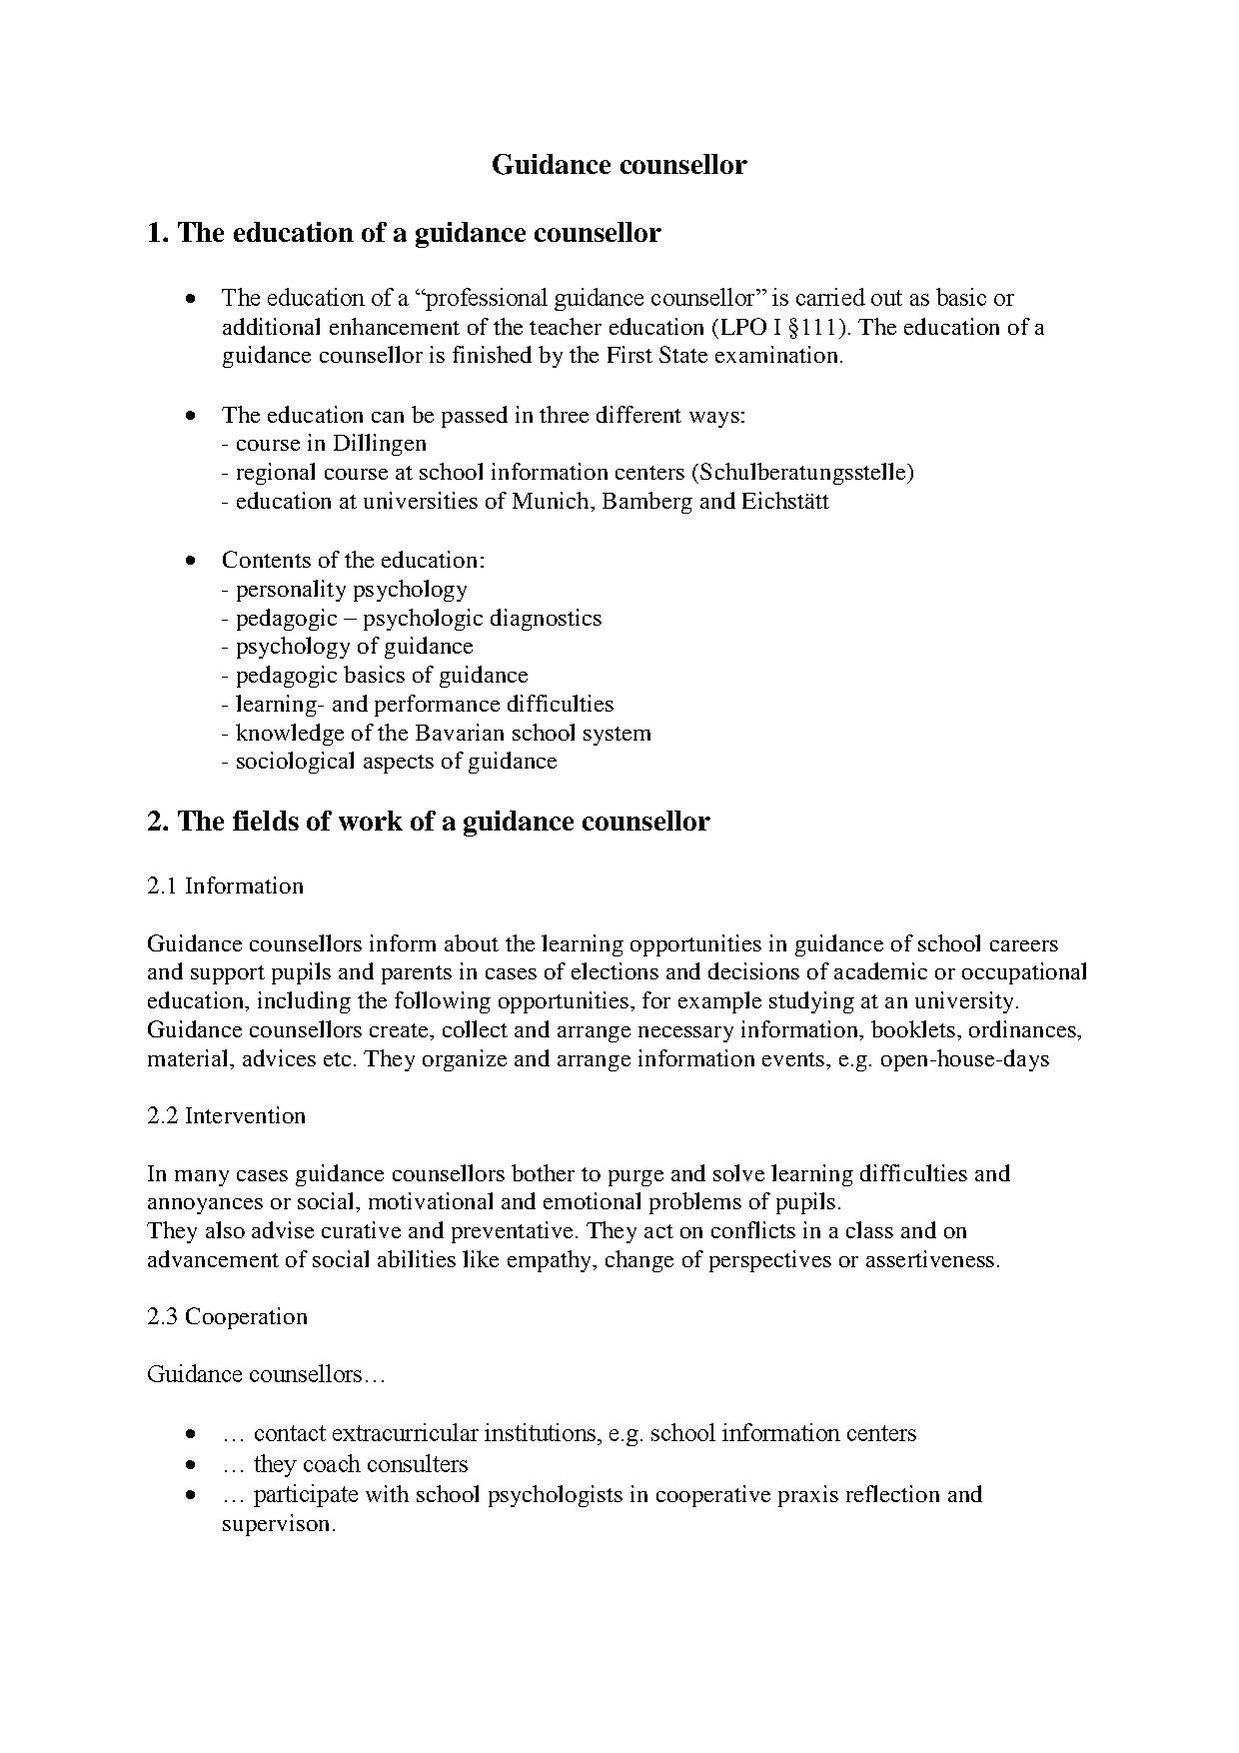 Guidance counsellor.pdf